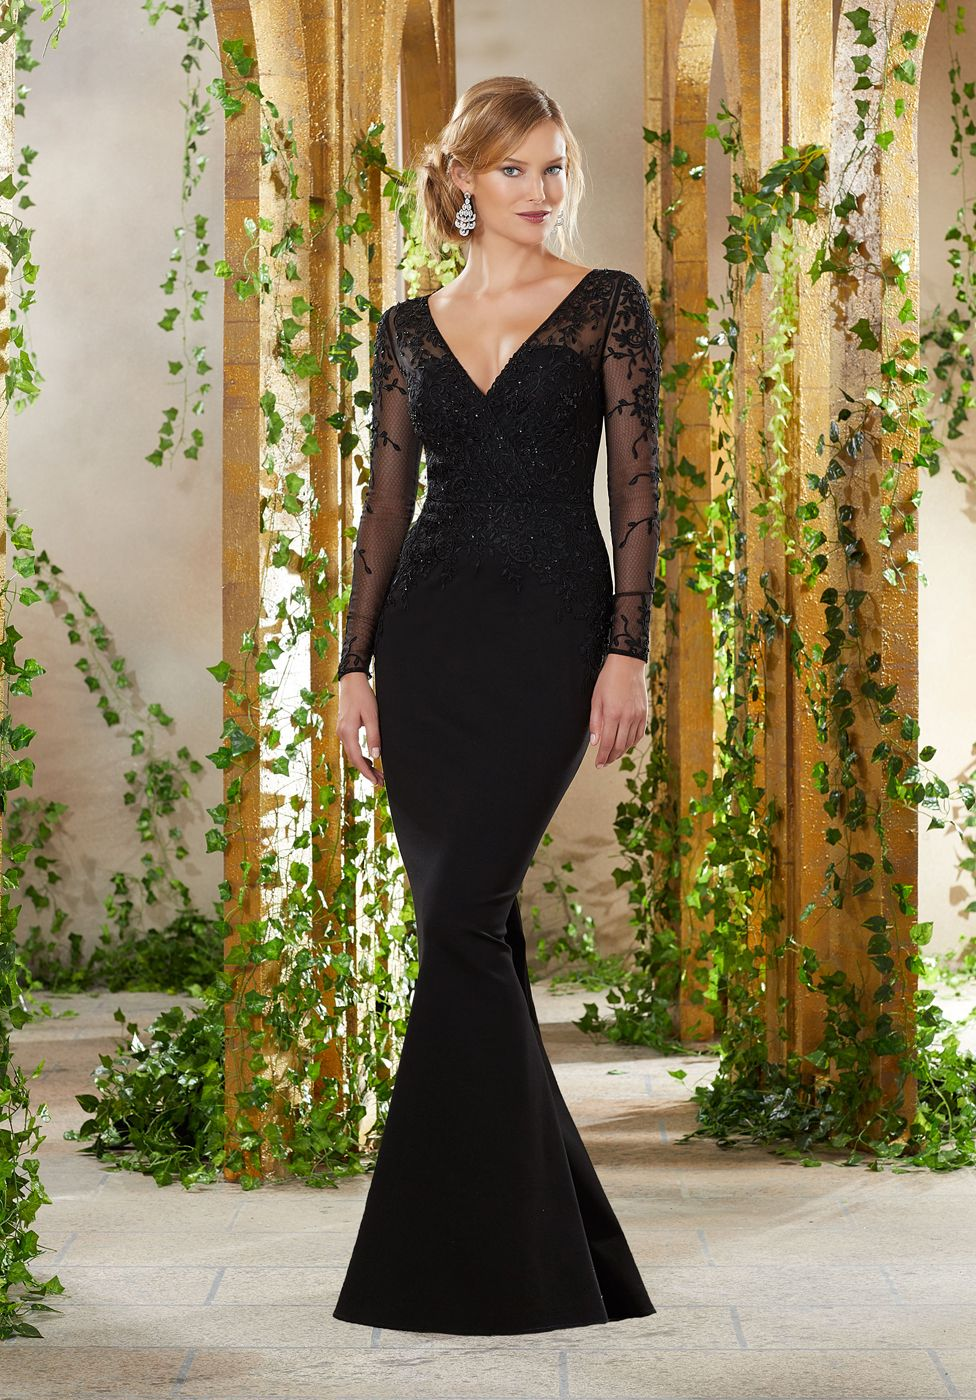 11332c9dce3c ... the sweetheart bodice and the illusion V-neckline of this MGNY by Mori  Lee 71910 jersey evening gown with long illusion sleeves. This full-length  fitted ...